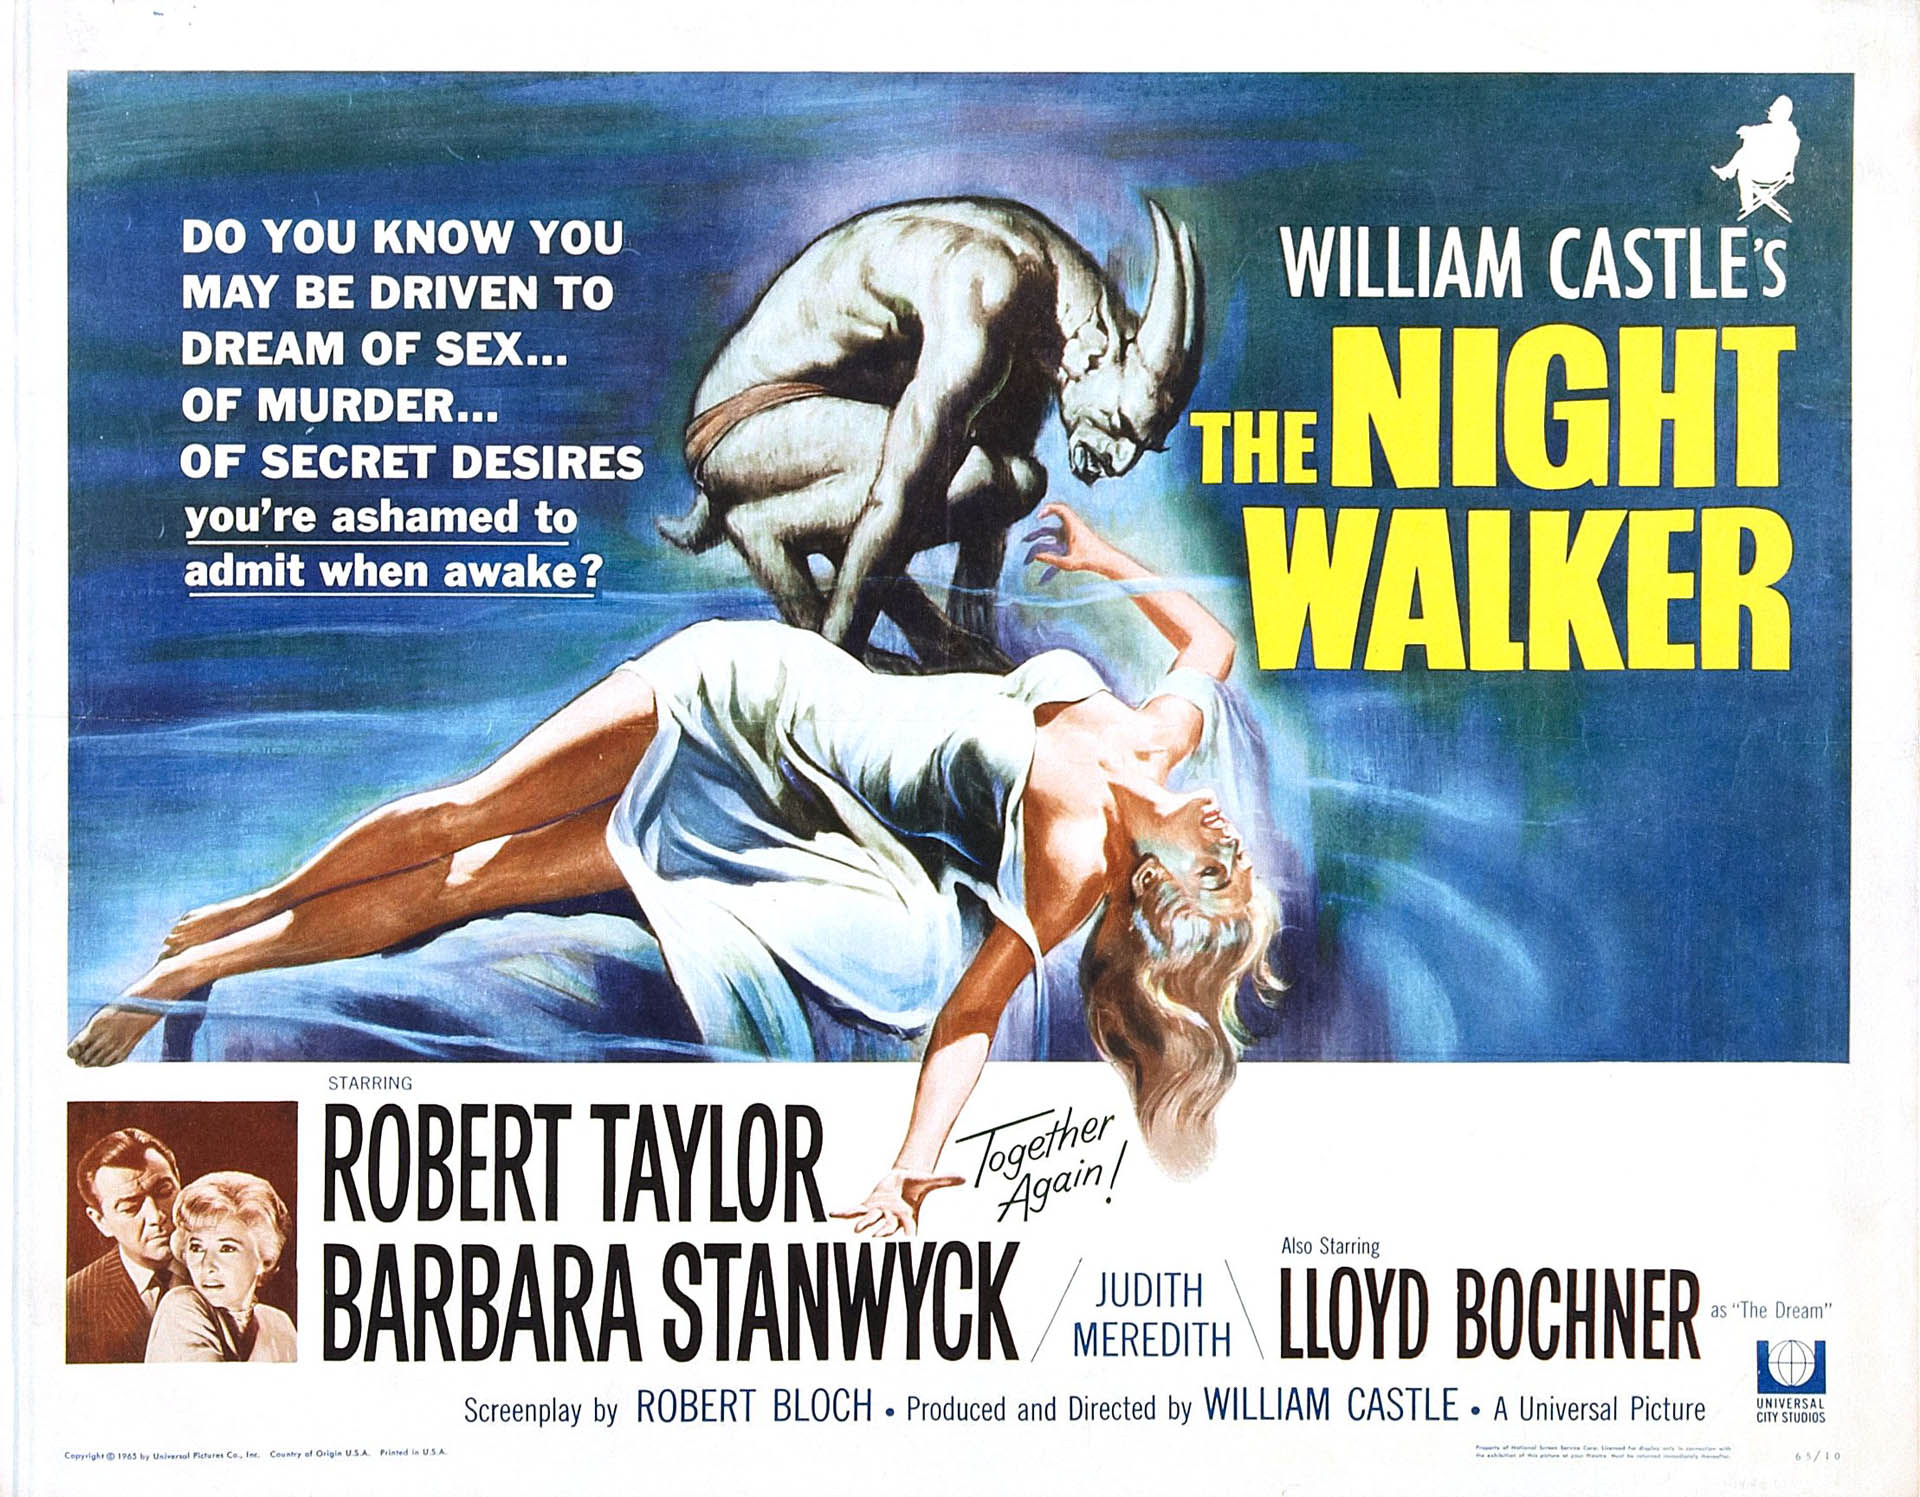 http://ayay.co.uk/backgrounds/b_movie_posters/1960s/the-night-walker.jpg